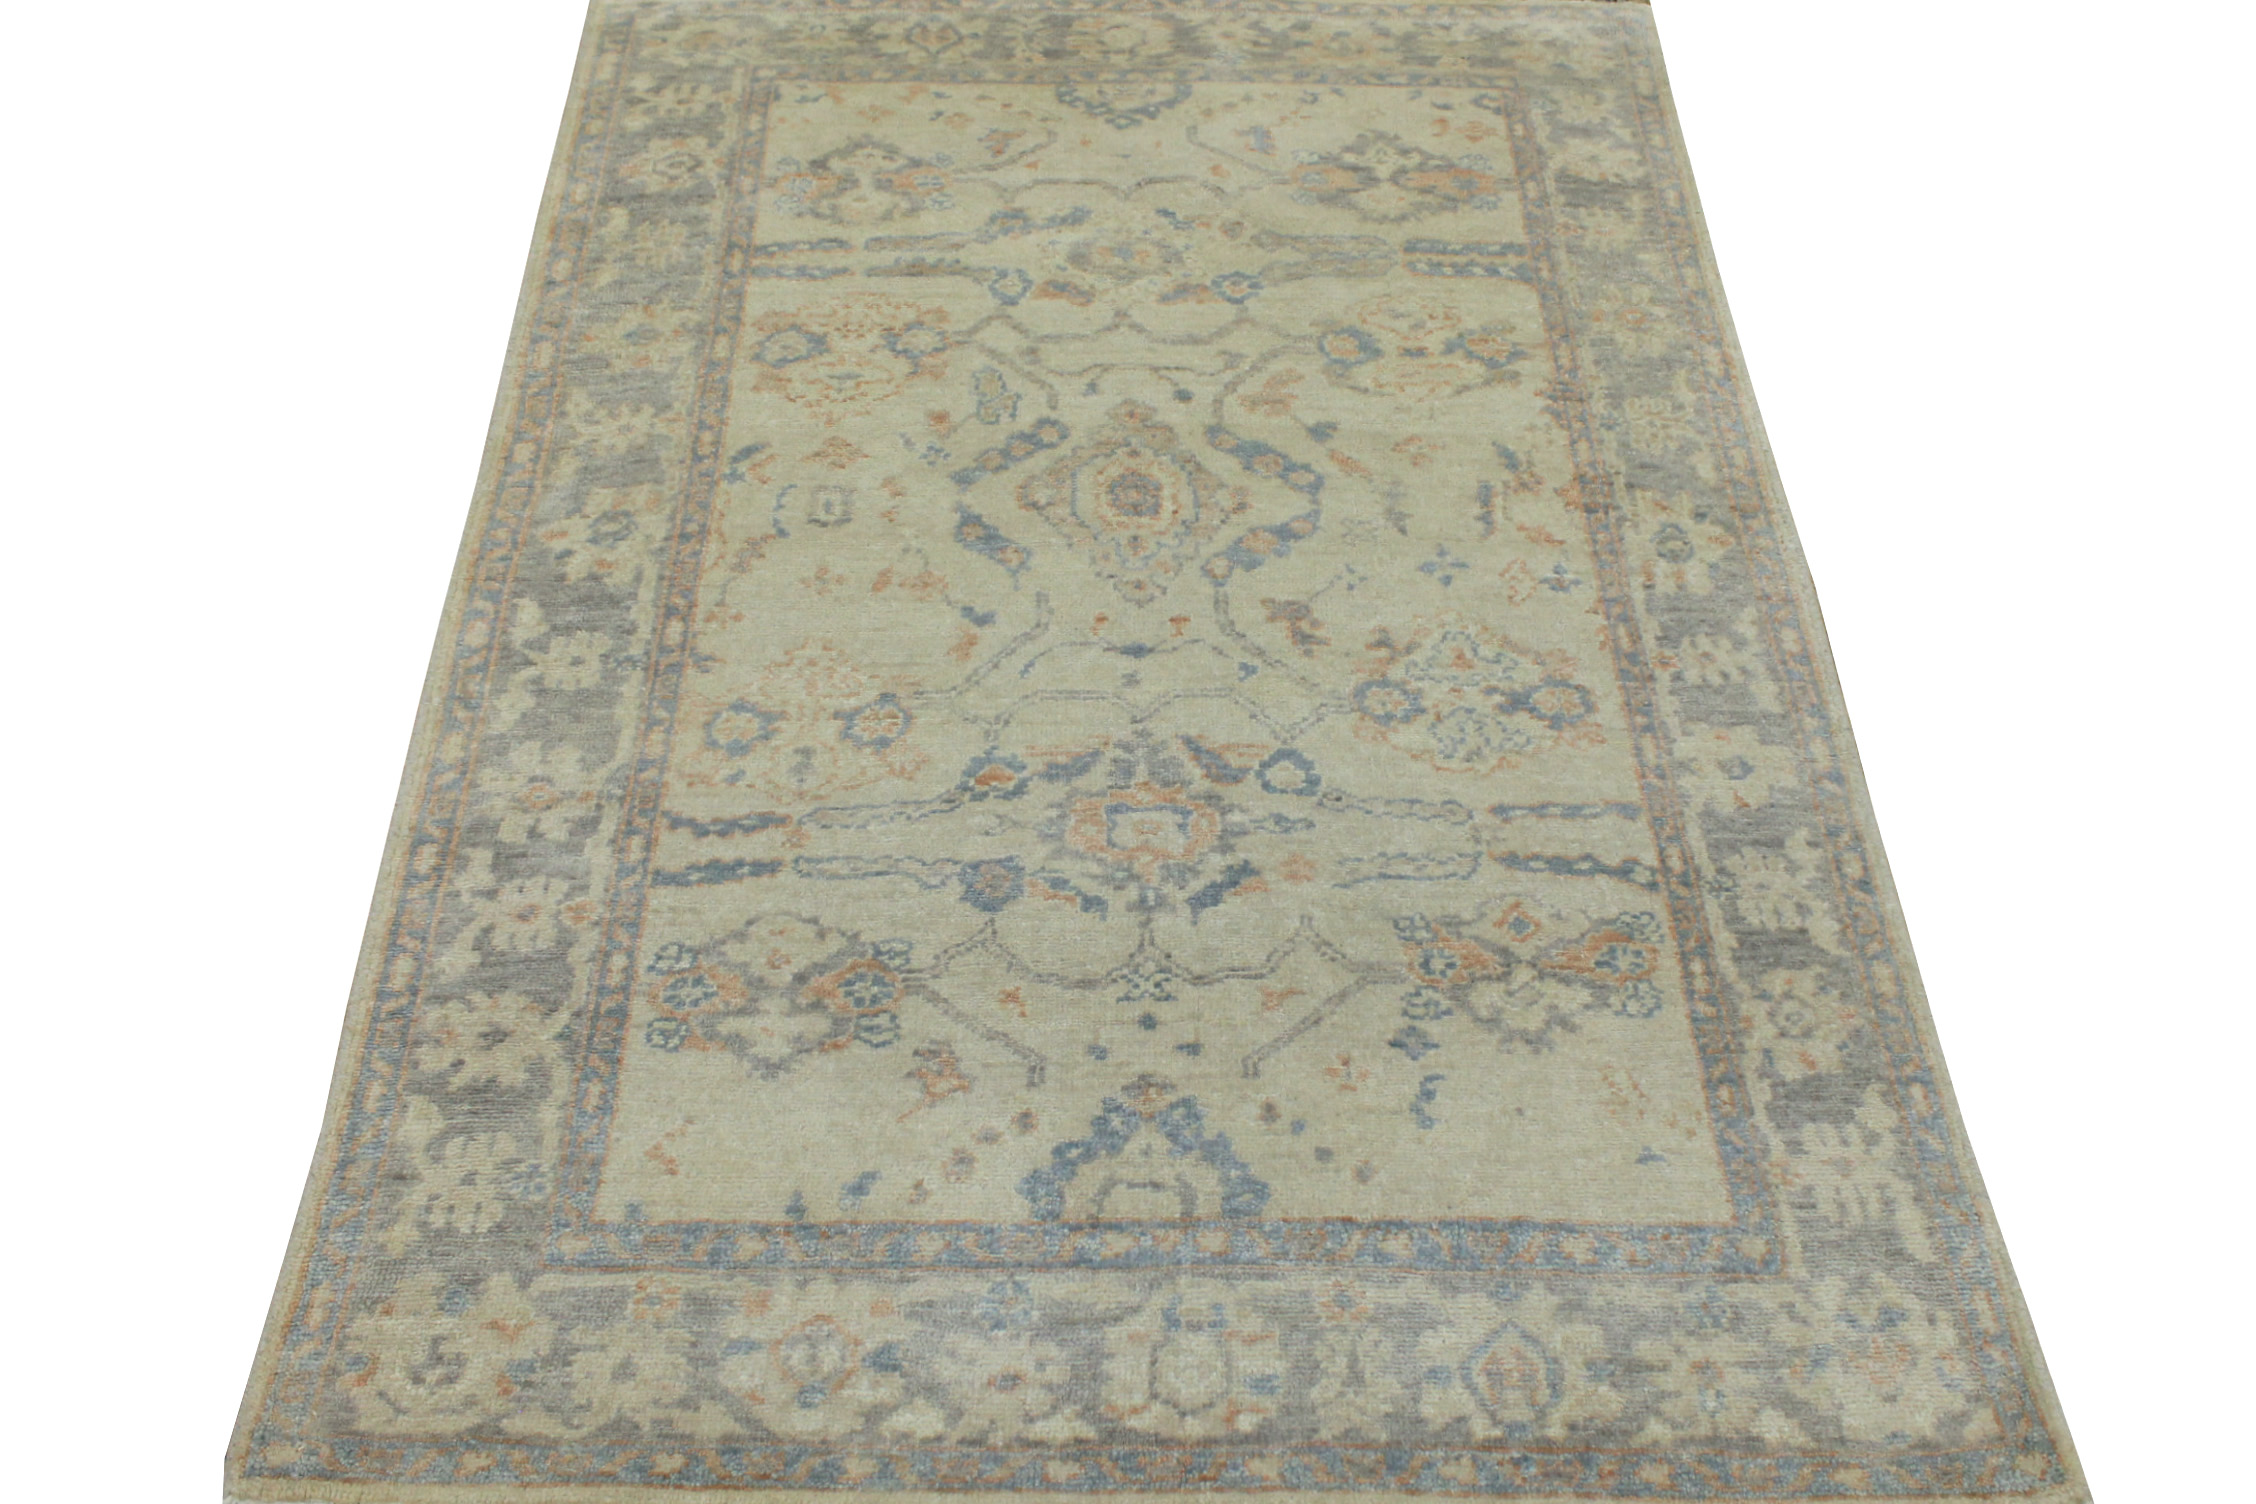 4x6 Oushak Hand Knotted Wool Area Rug - MR19535